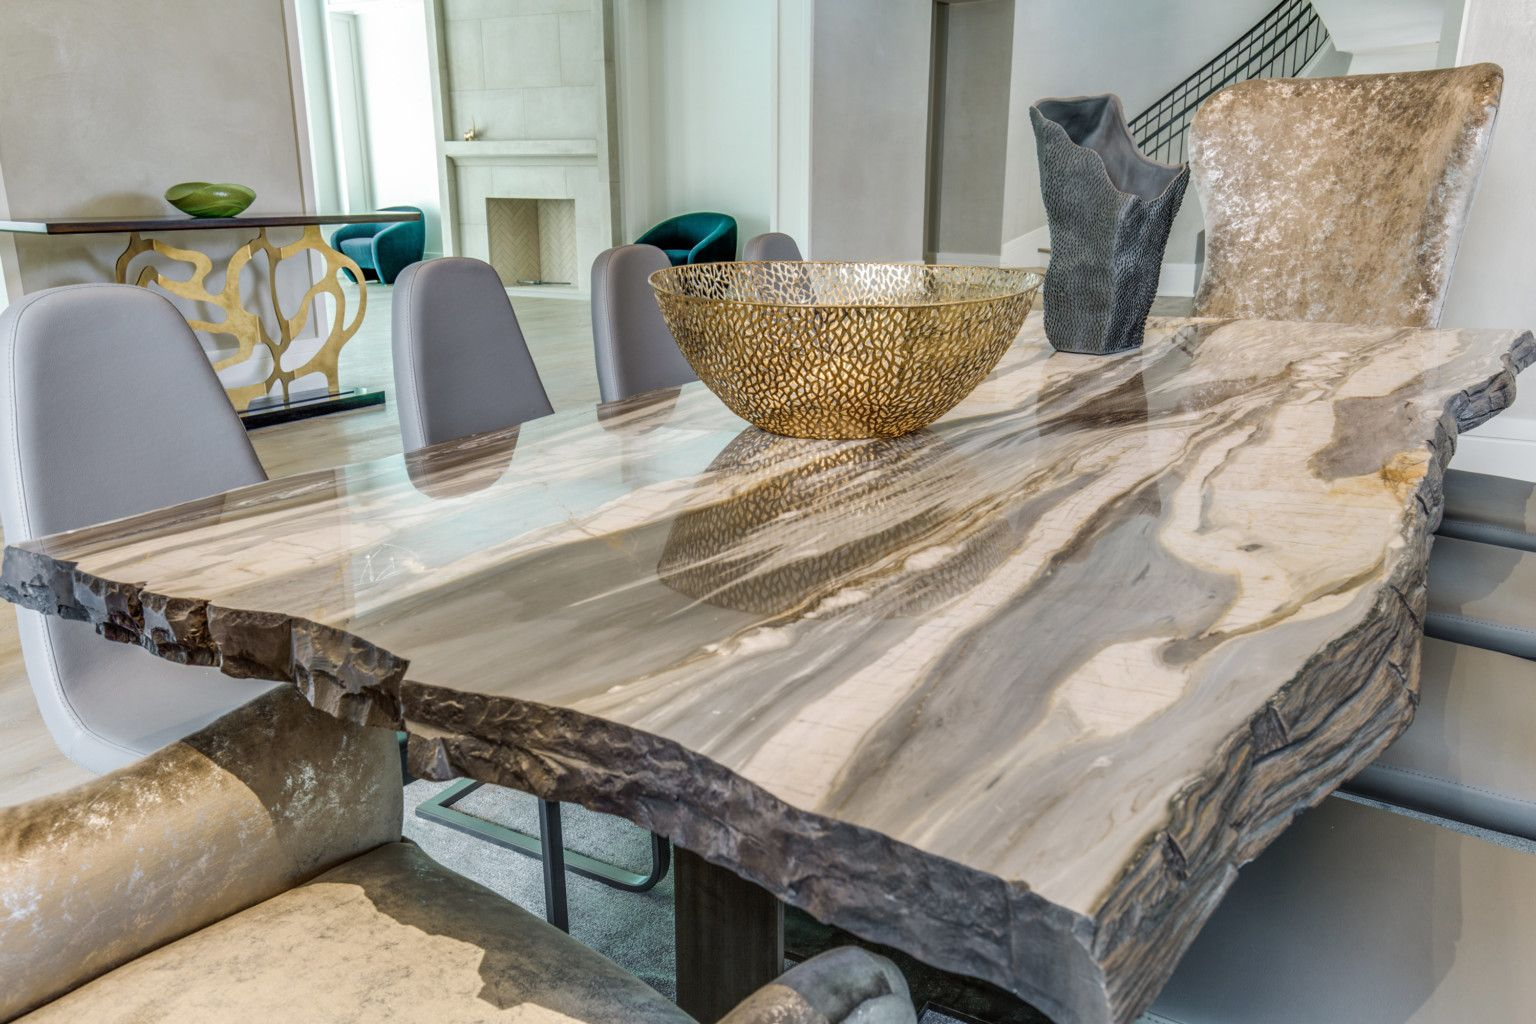 Calacatta Cielo Marble Table And Dining Room Aria Stone Gallery Marble Table Wood Dining Room Table Dining Table #stone #living #room #tables